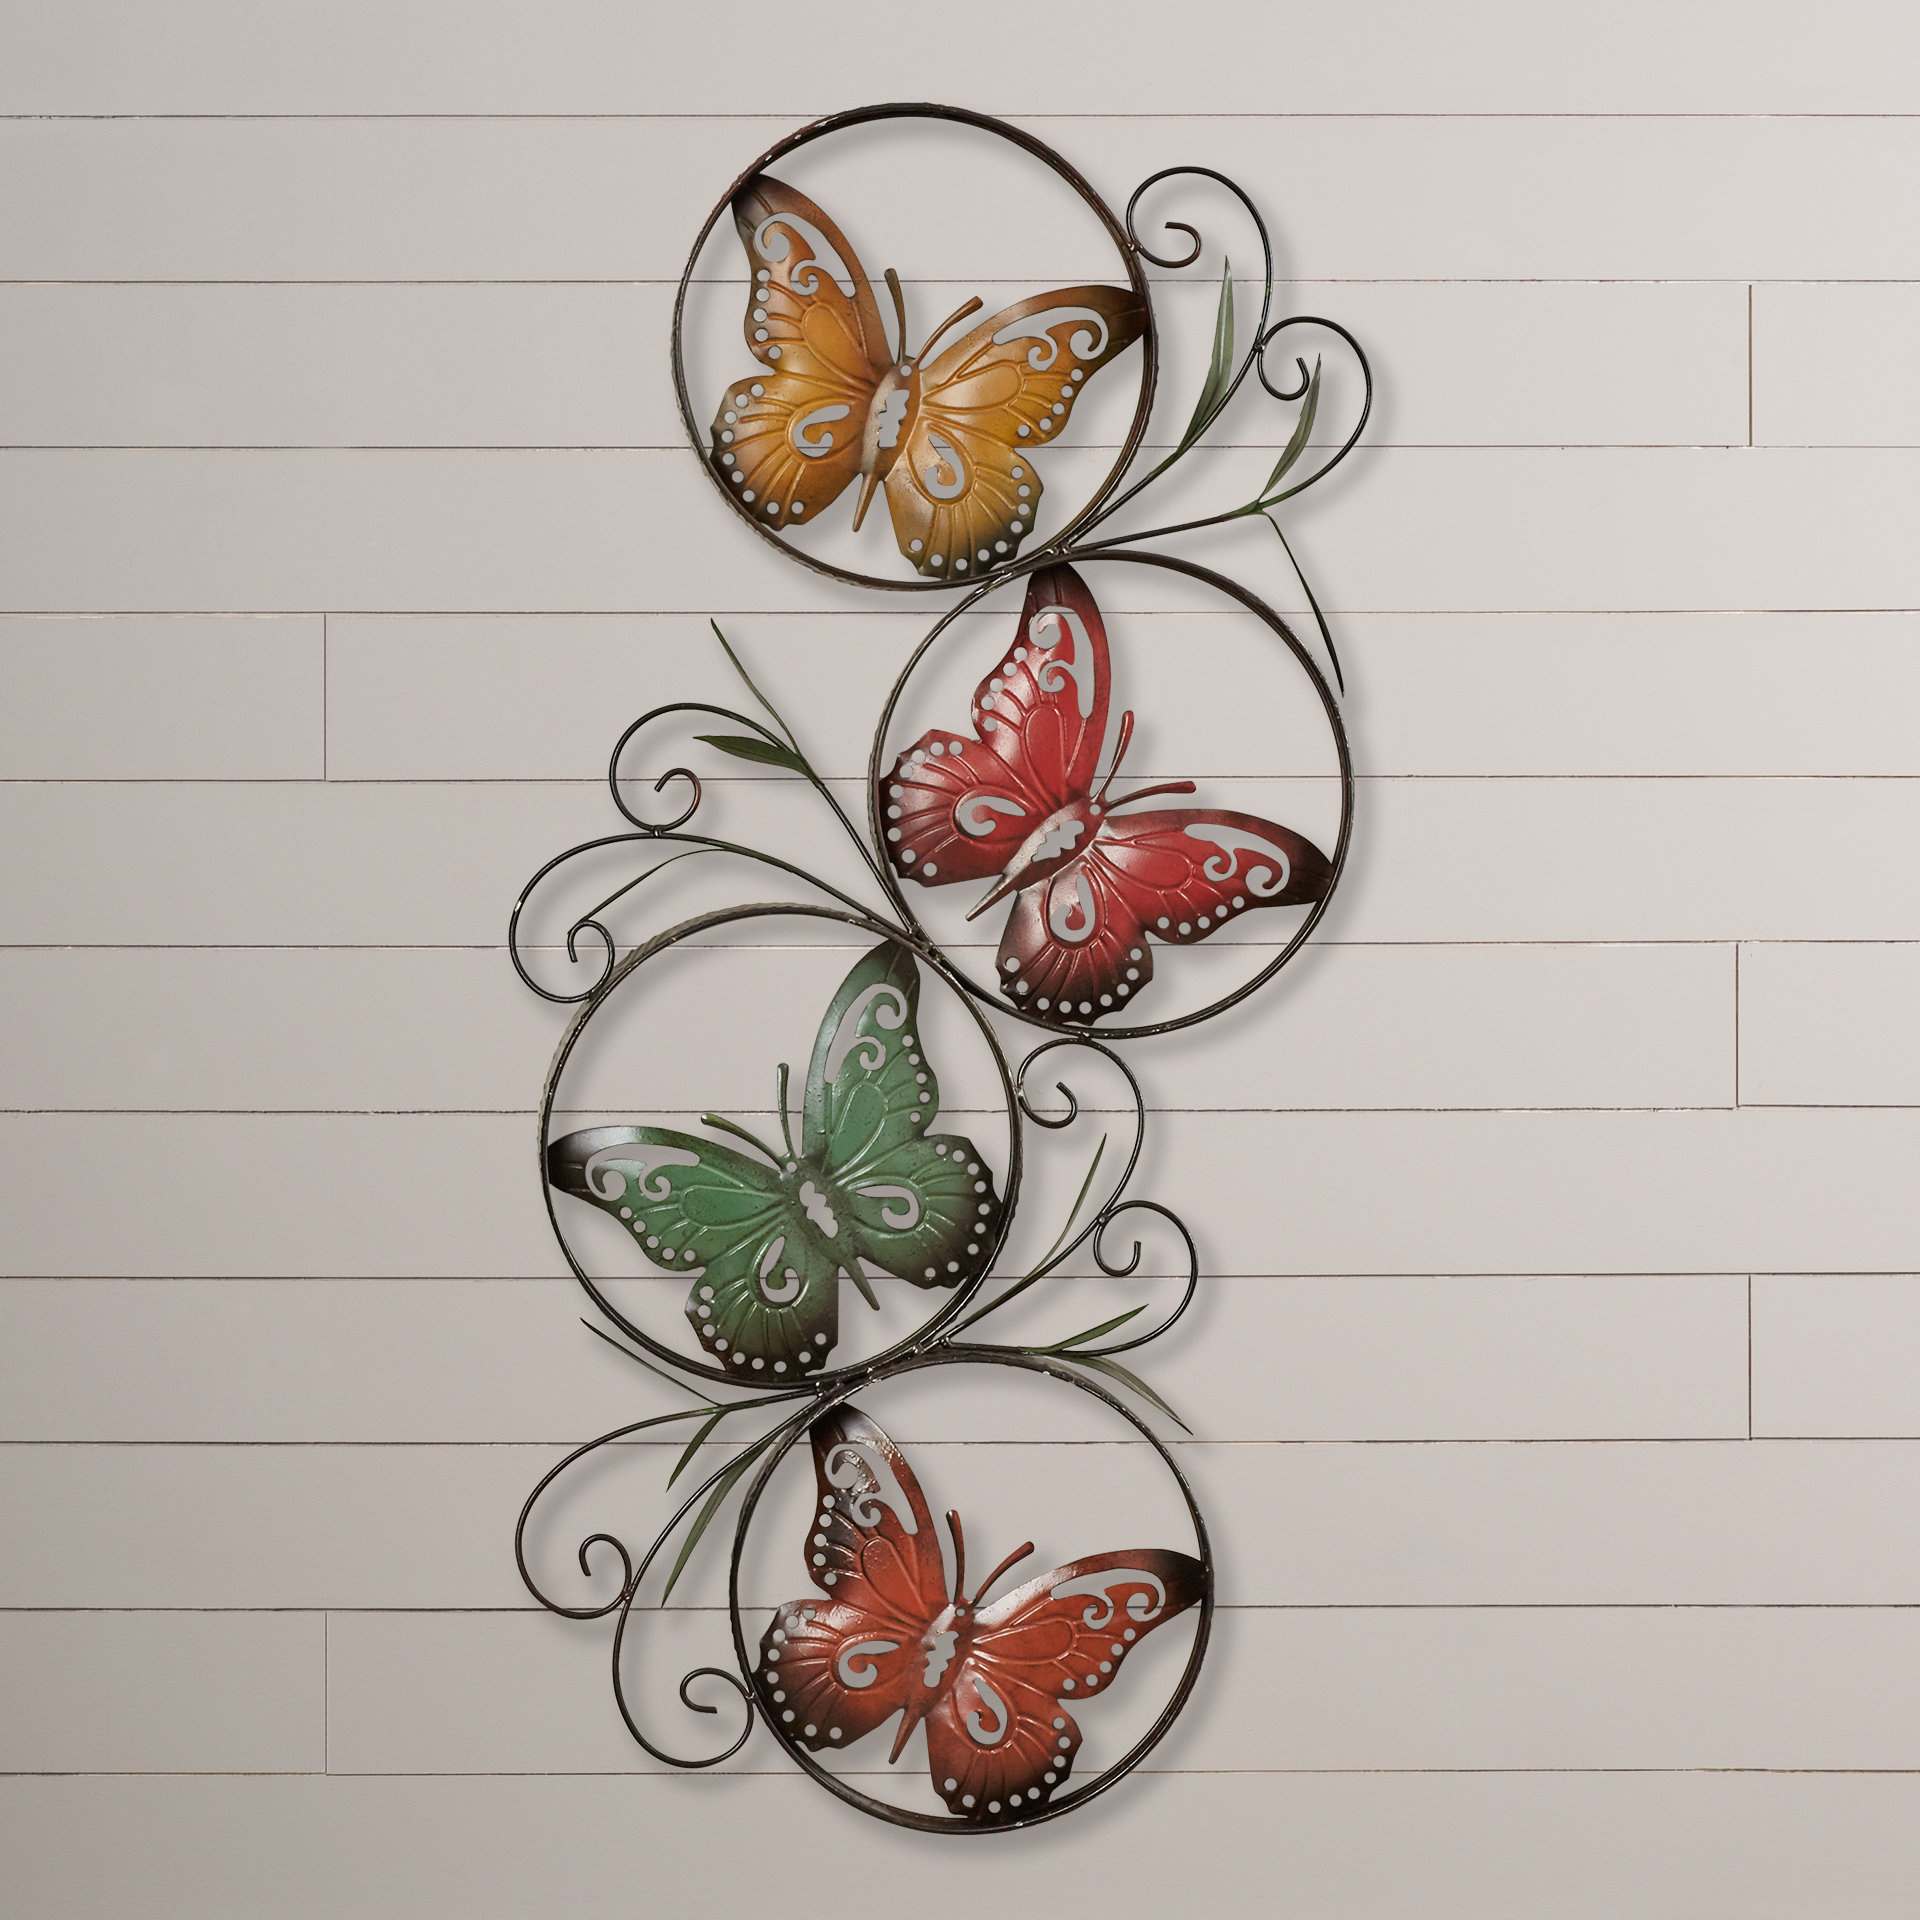 Butterfly 3d Metal Wall Decor | Wayfair Within Flower And Butterfly Urban Design Metal Wall Decor (View 16 of 30)